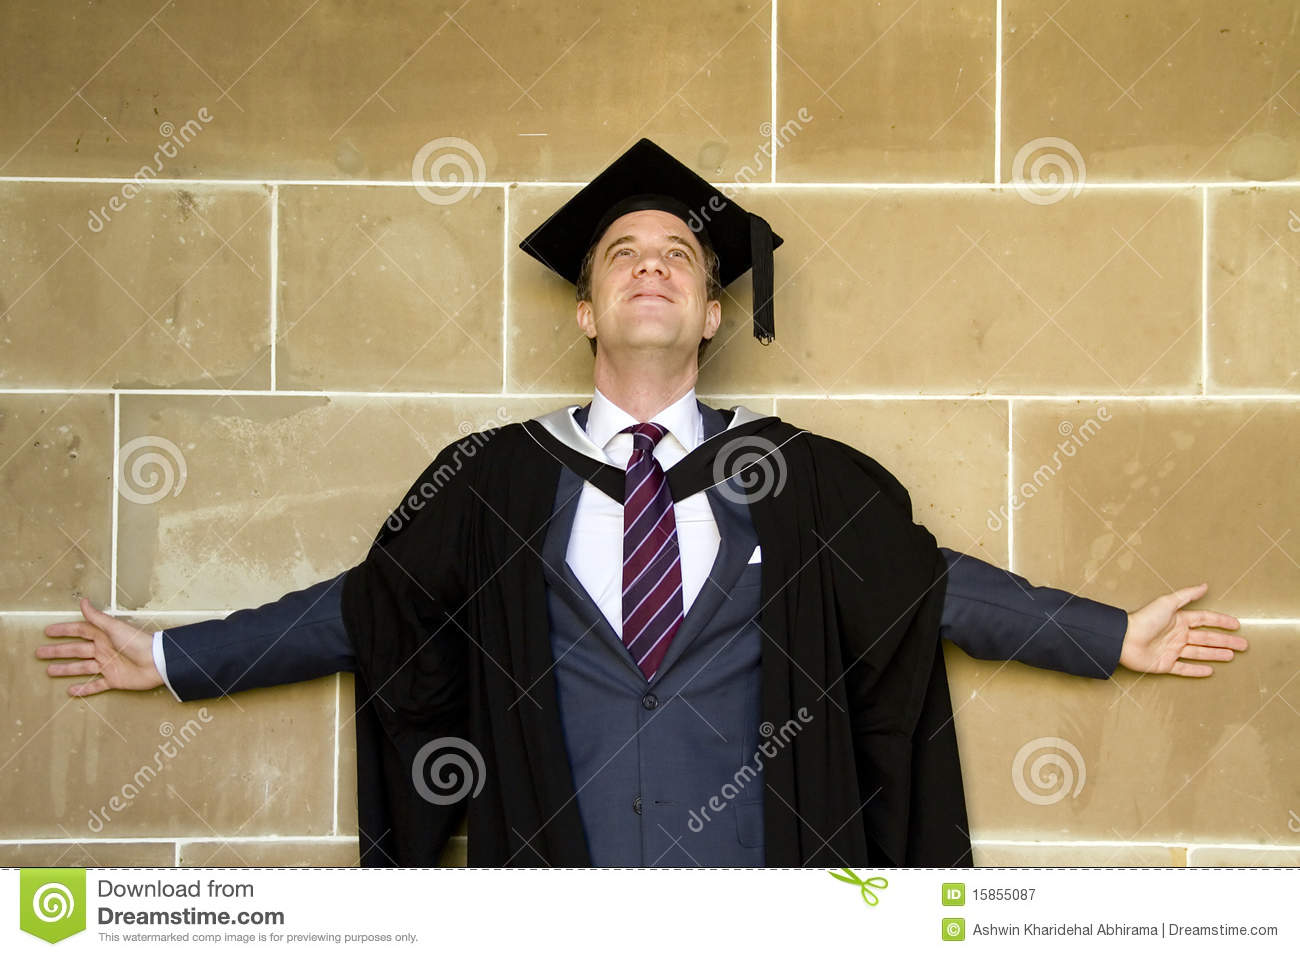 A Young Man In A Graduation Gown. Stock Image - Image of background ...